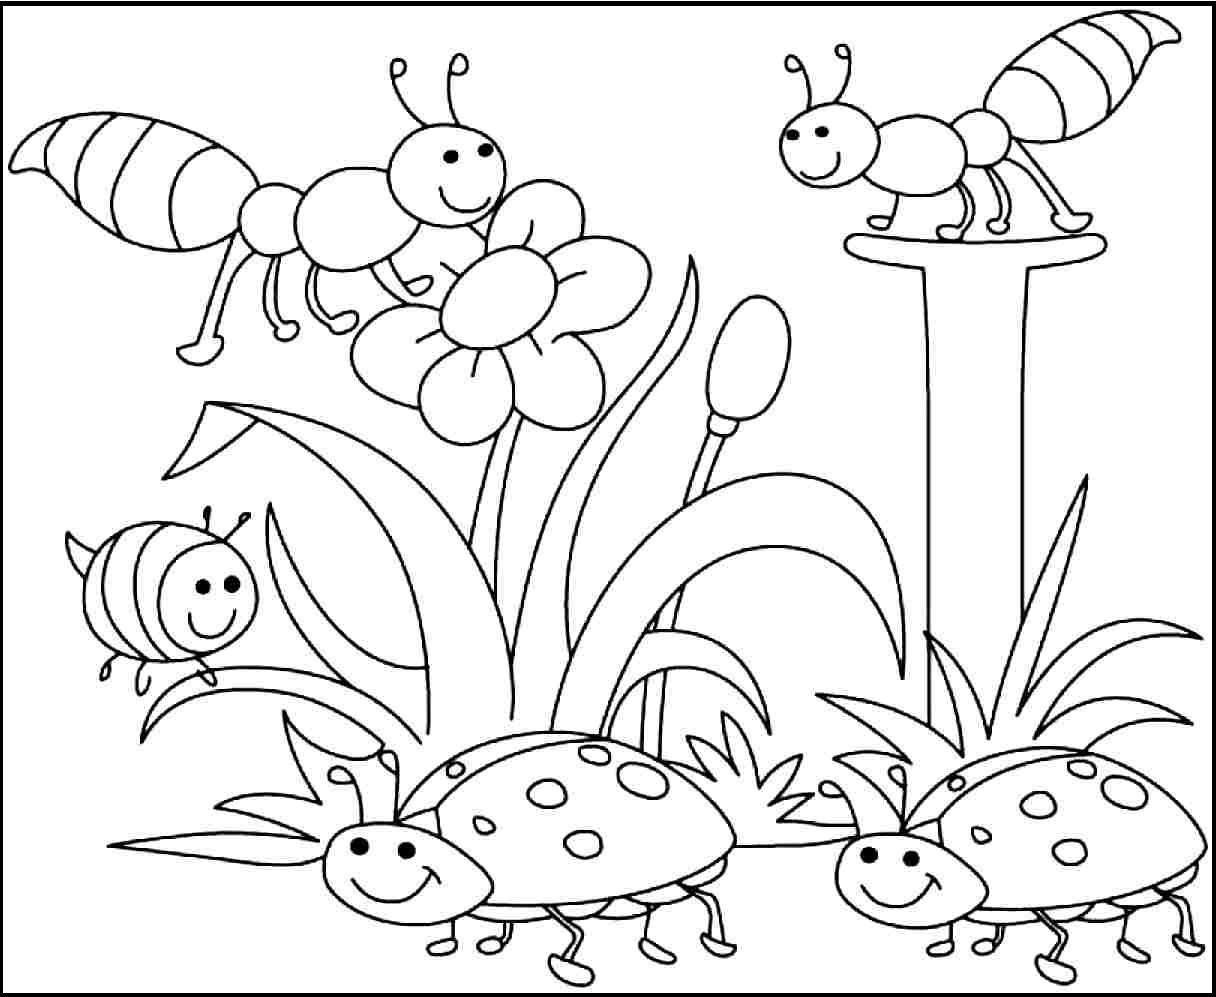 Spring Break Coloring Pages - Coloring Pages Free Printable Spring Coloring Pages Kids